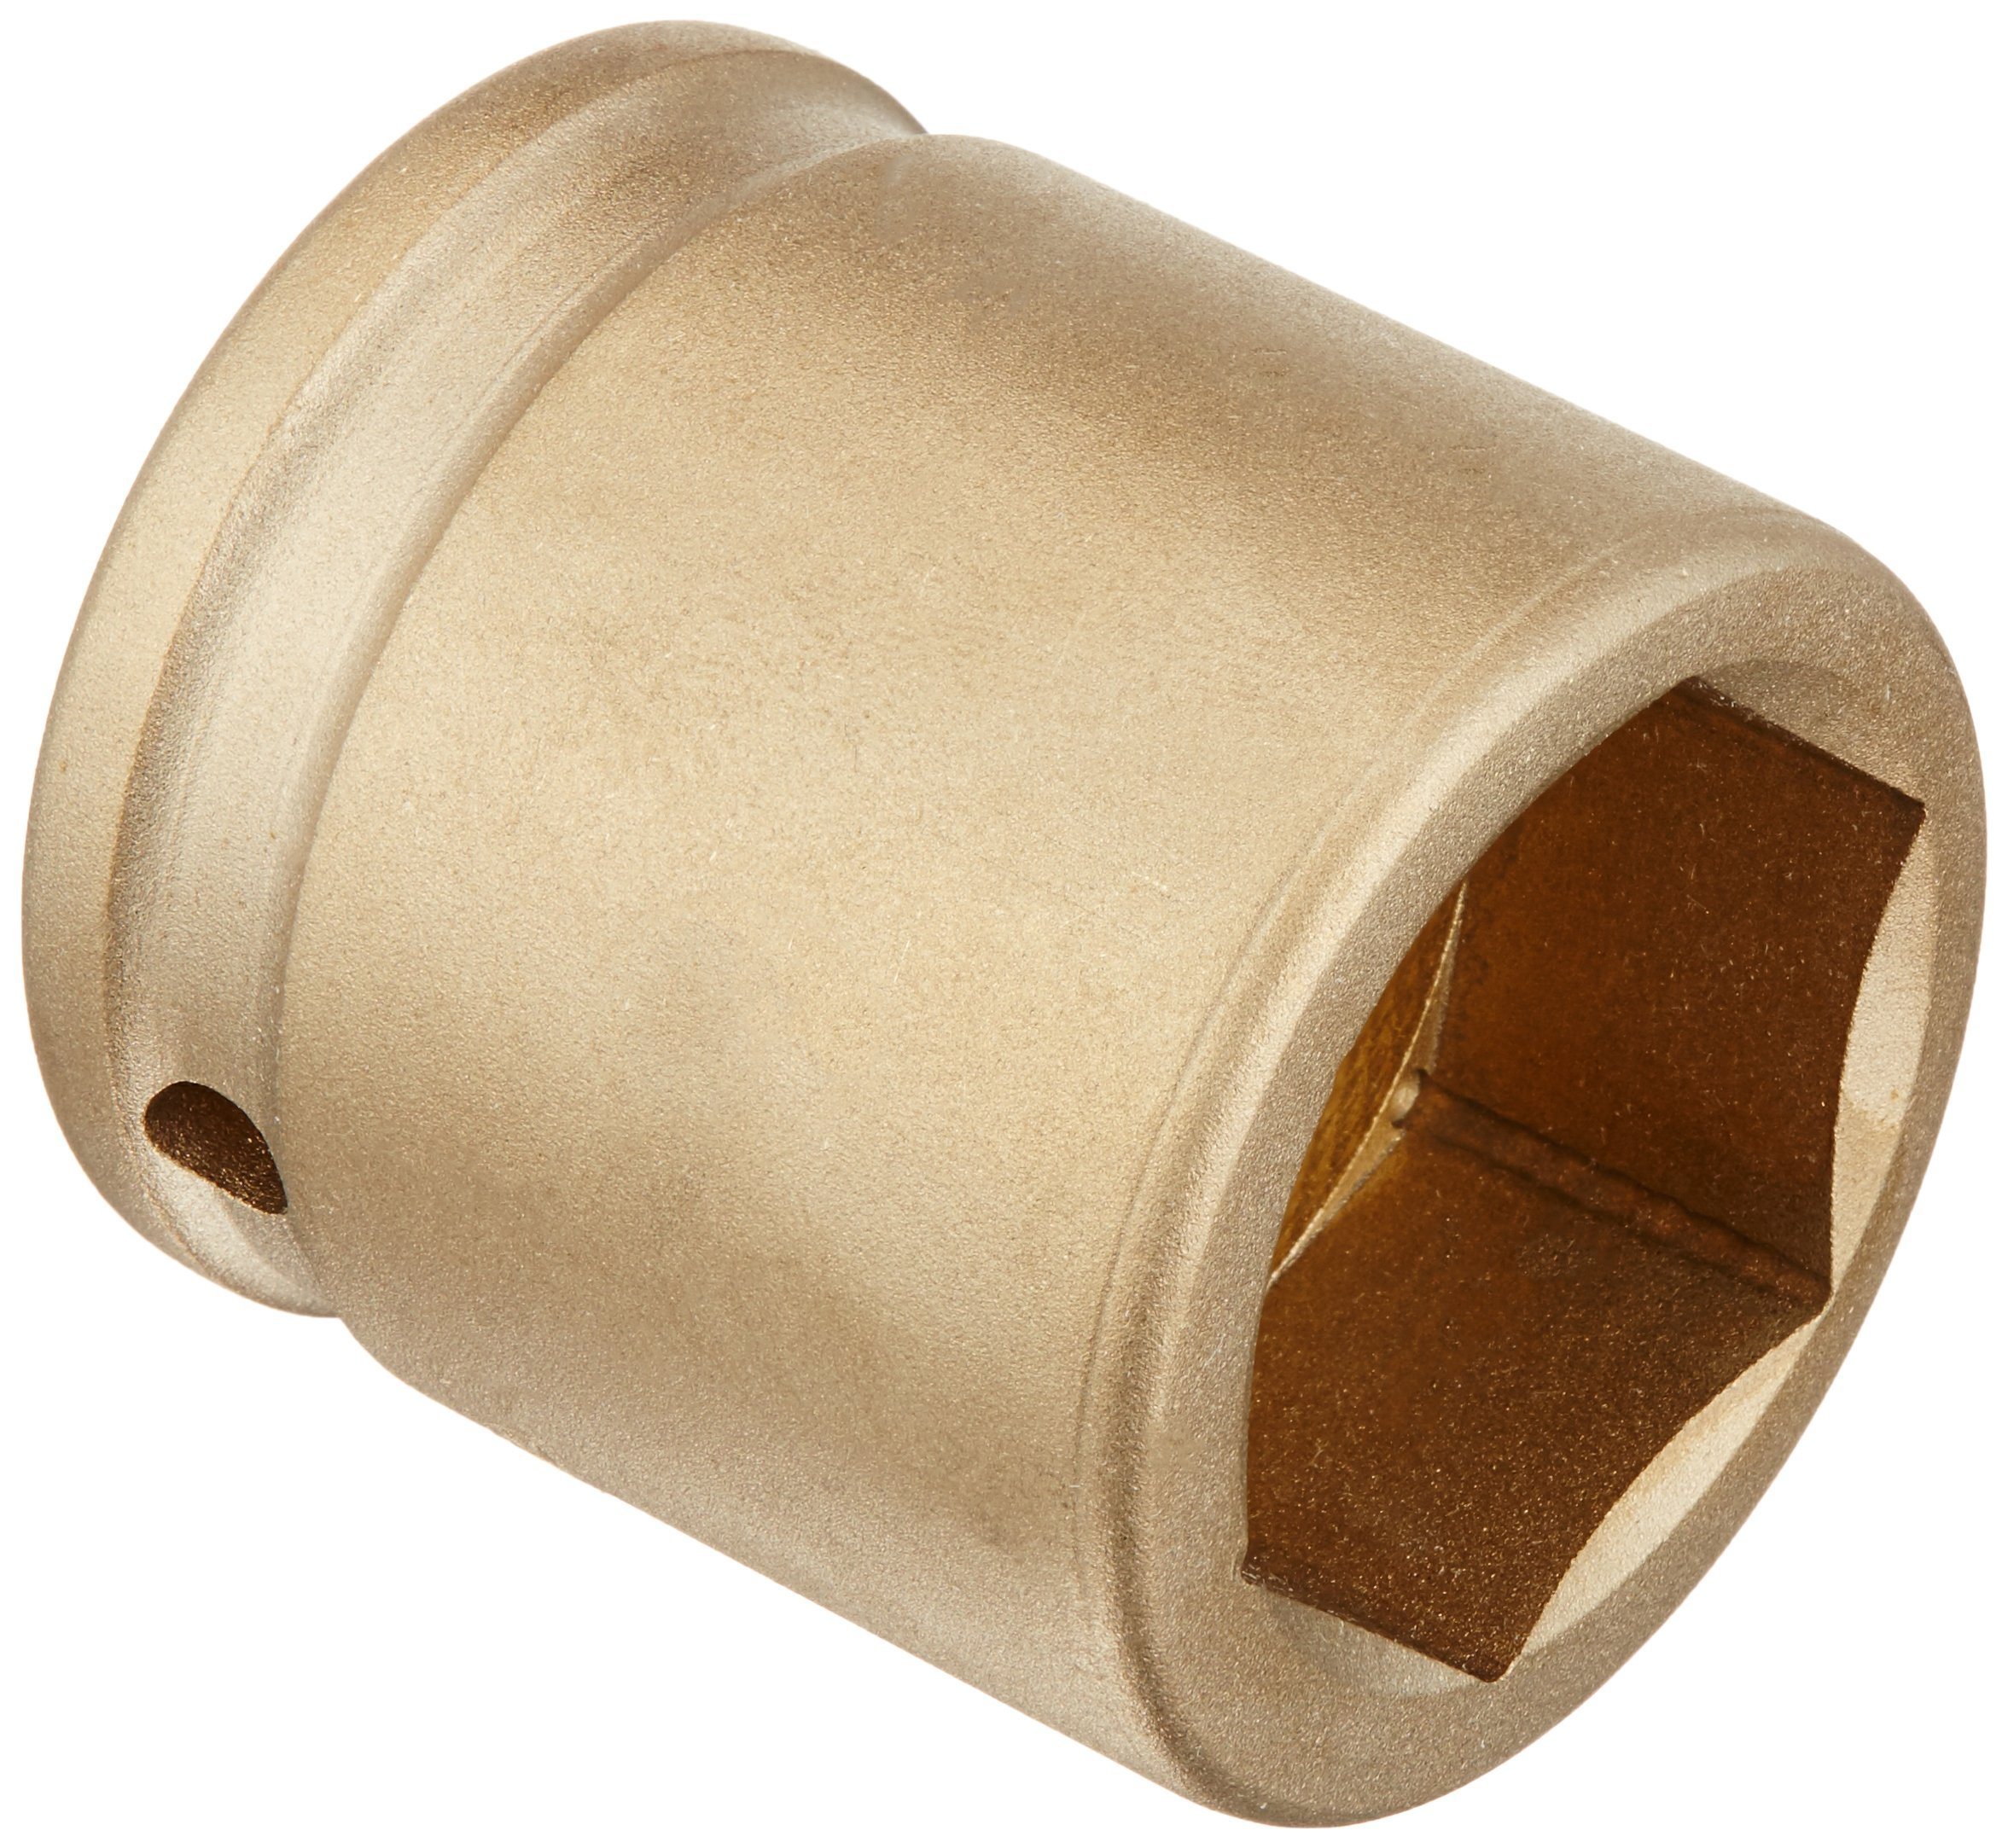 Ampco Safety Tools I-3/4D1-3/8 Socket, Standard Impact, Non-Sparking, Non-Magnetic, Corrosion Resistant, 3/4'' Drive, 1-3/8''